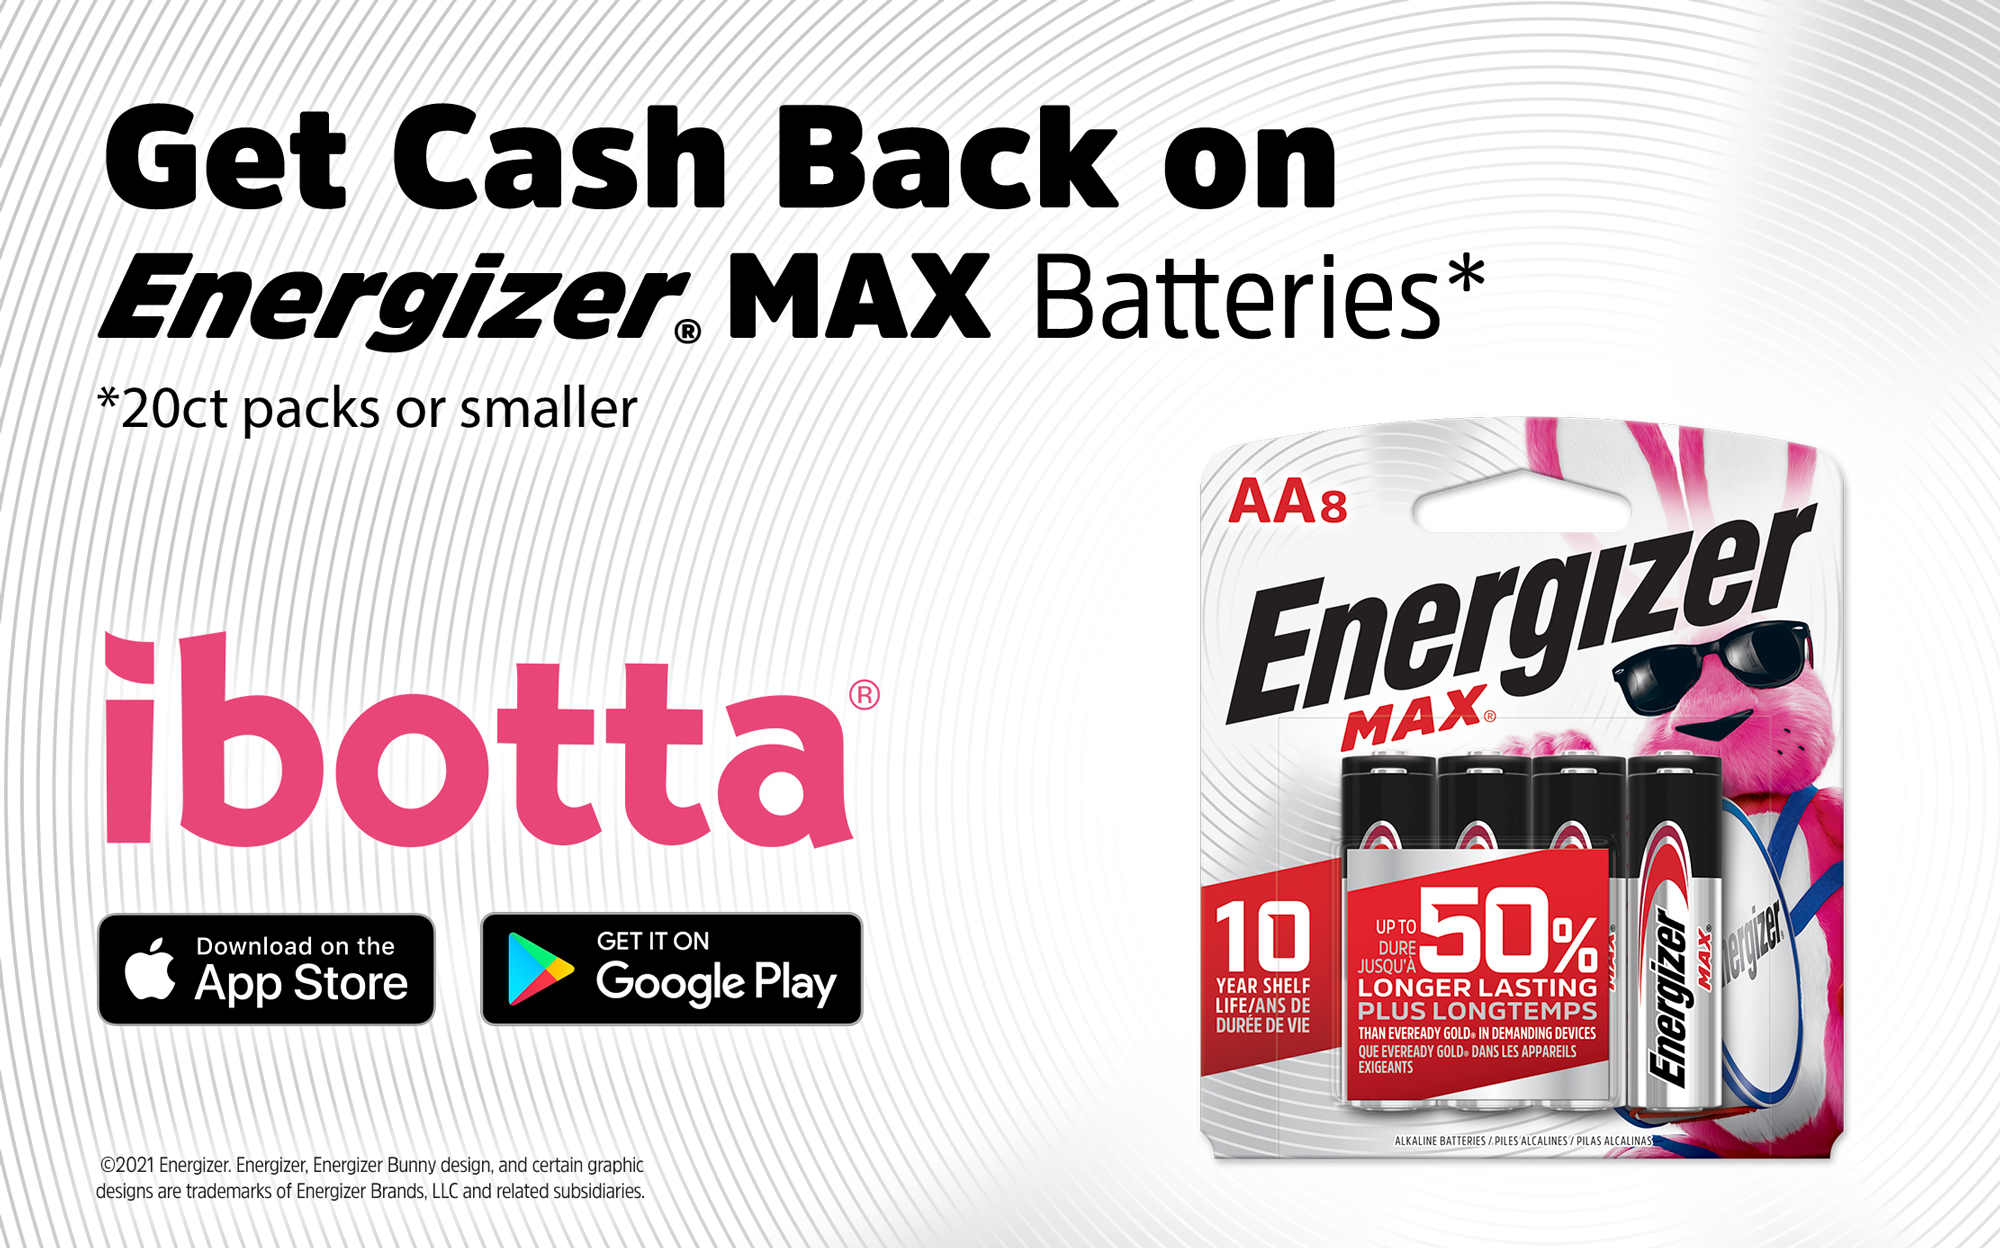 ibotta battery promotion